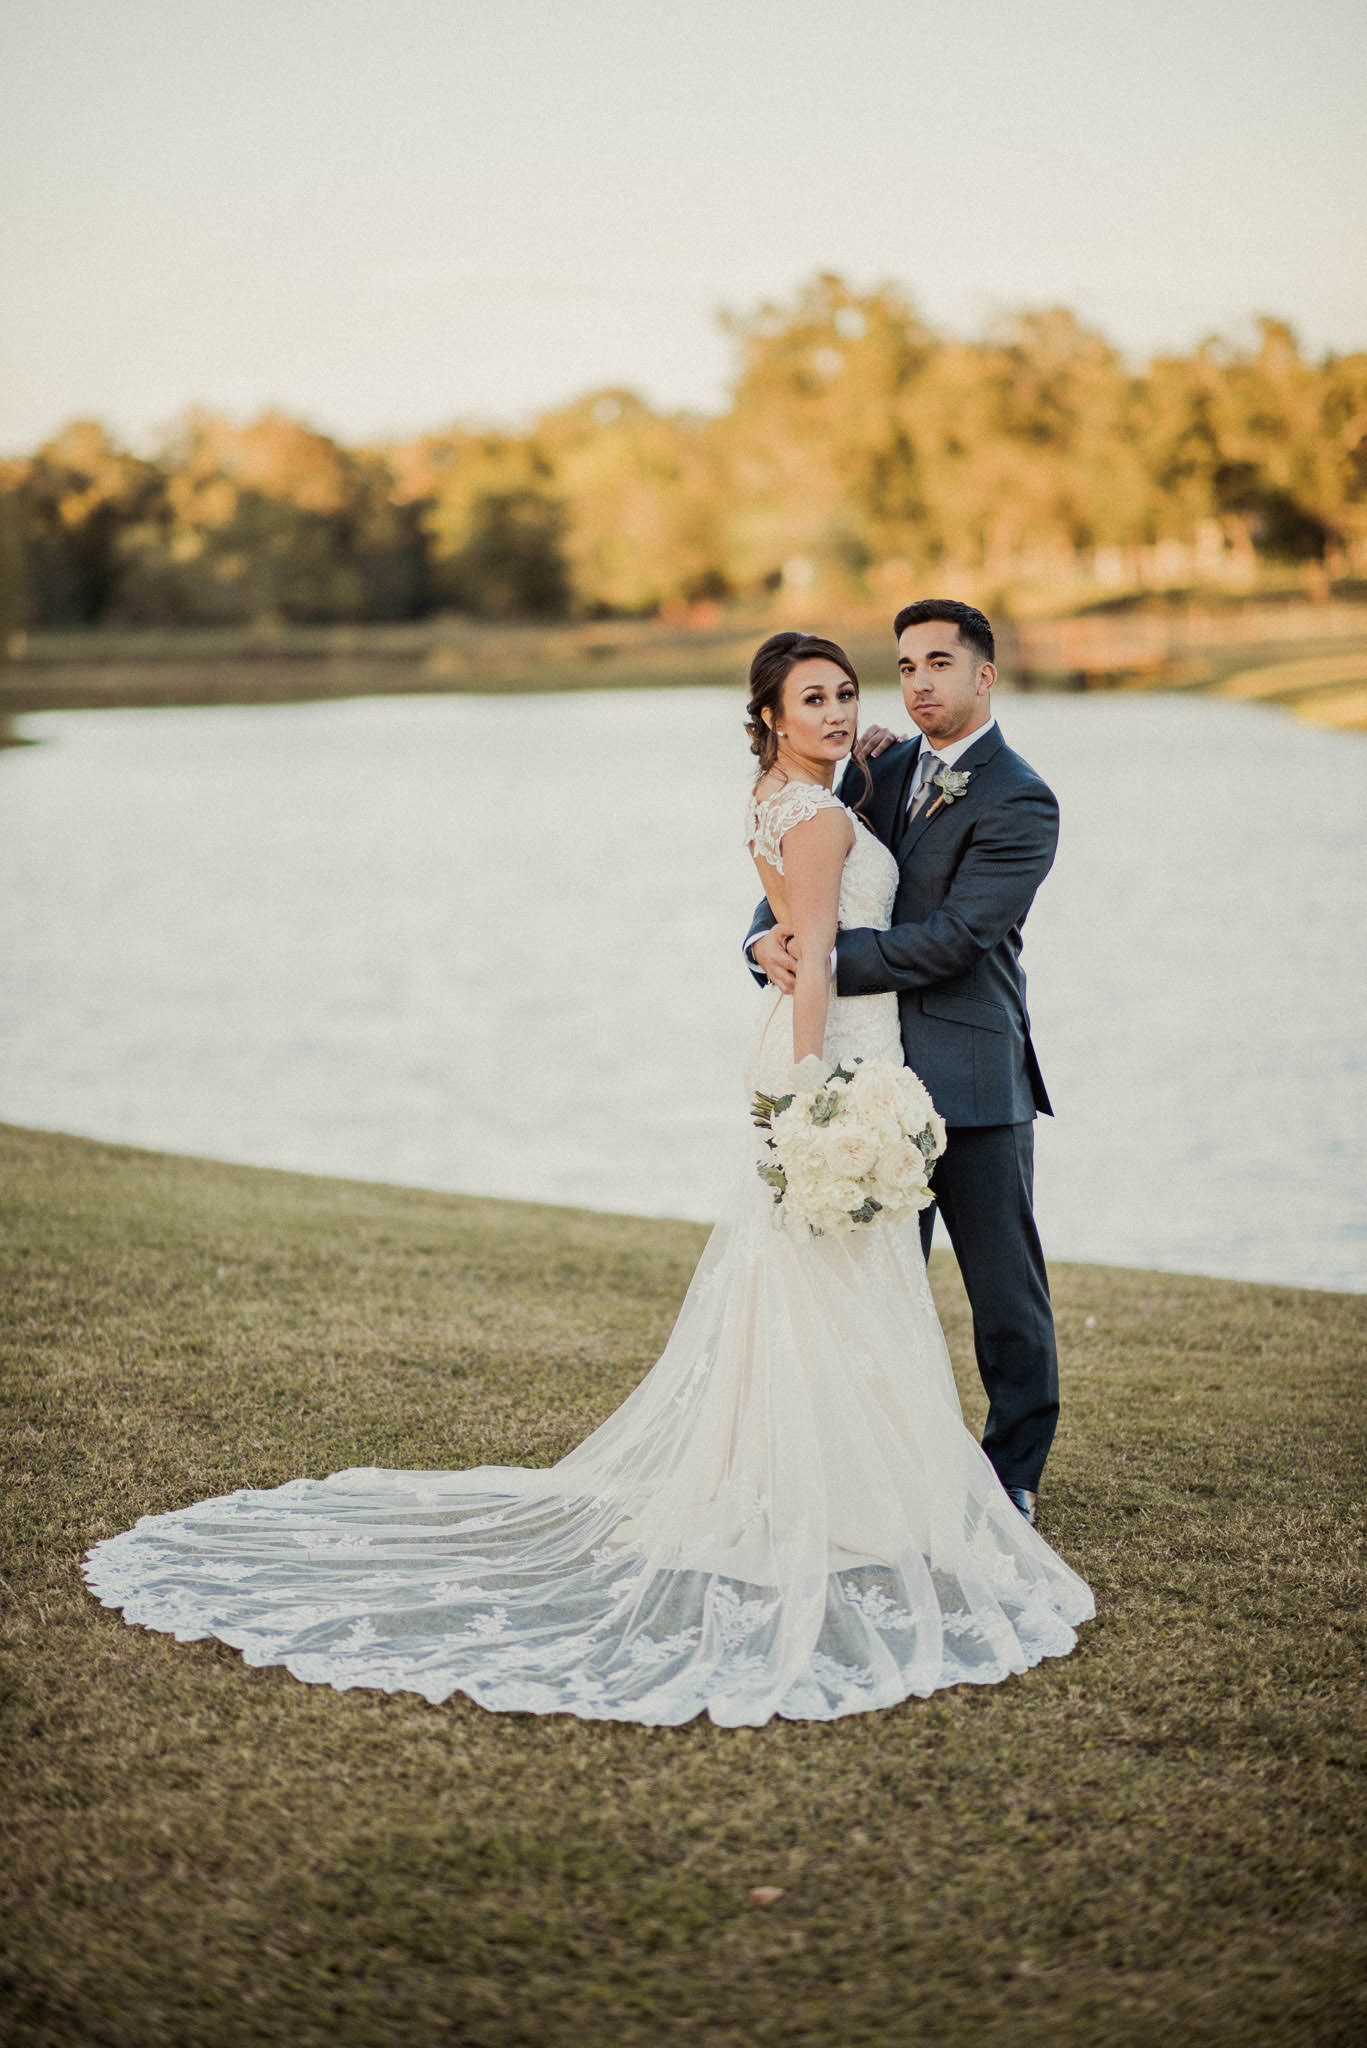 Briscoe-manor-rusitc-elegant-richmond-tx-wedding-photographer